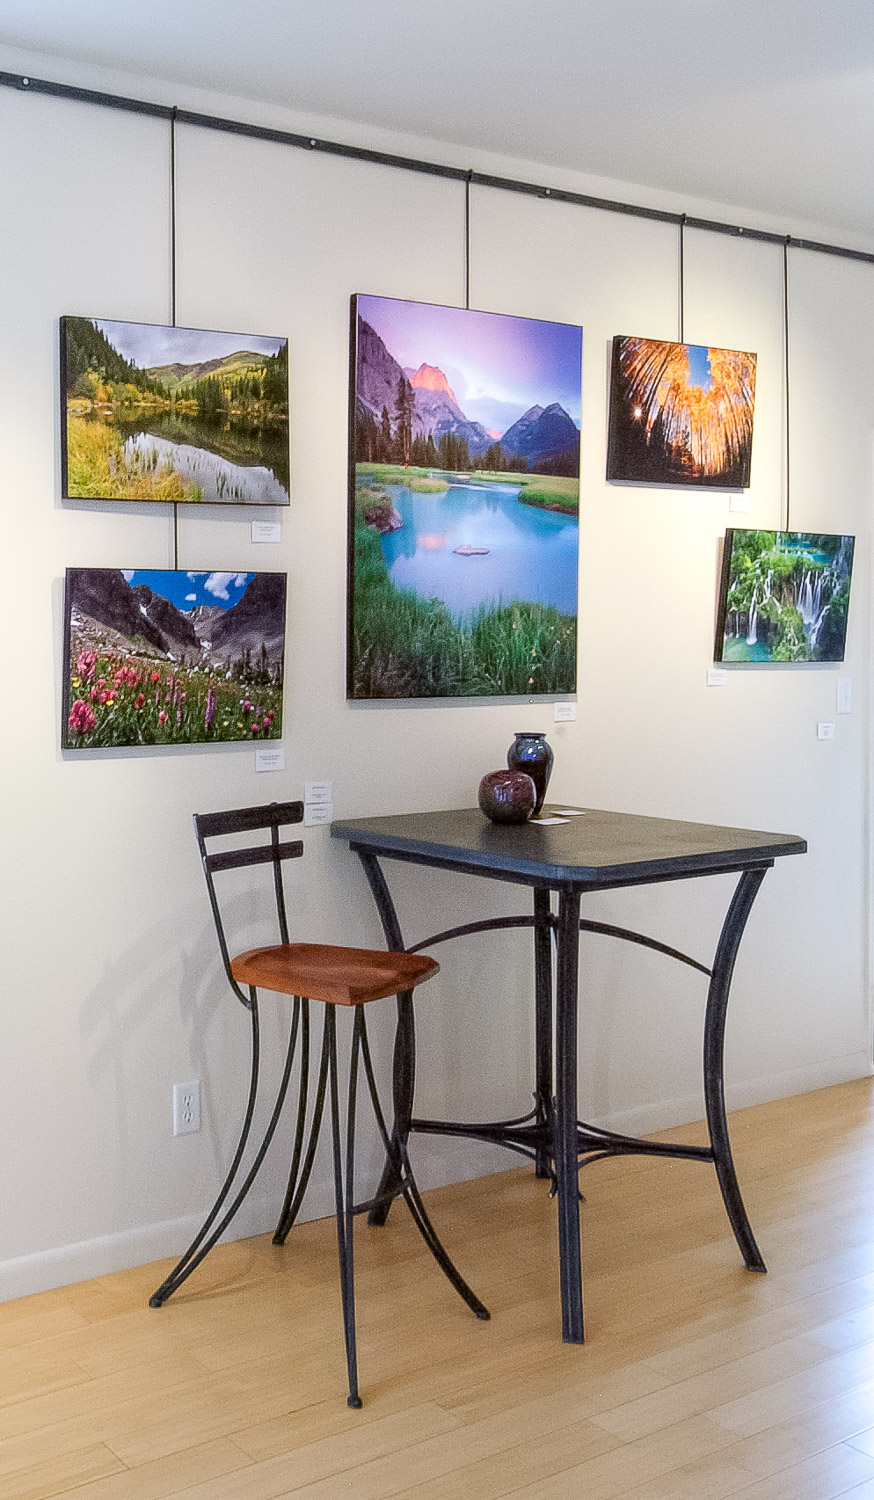 Prints at the Skol Gallery, Ouray, Colorado